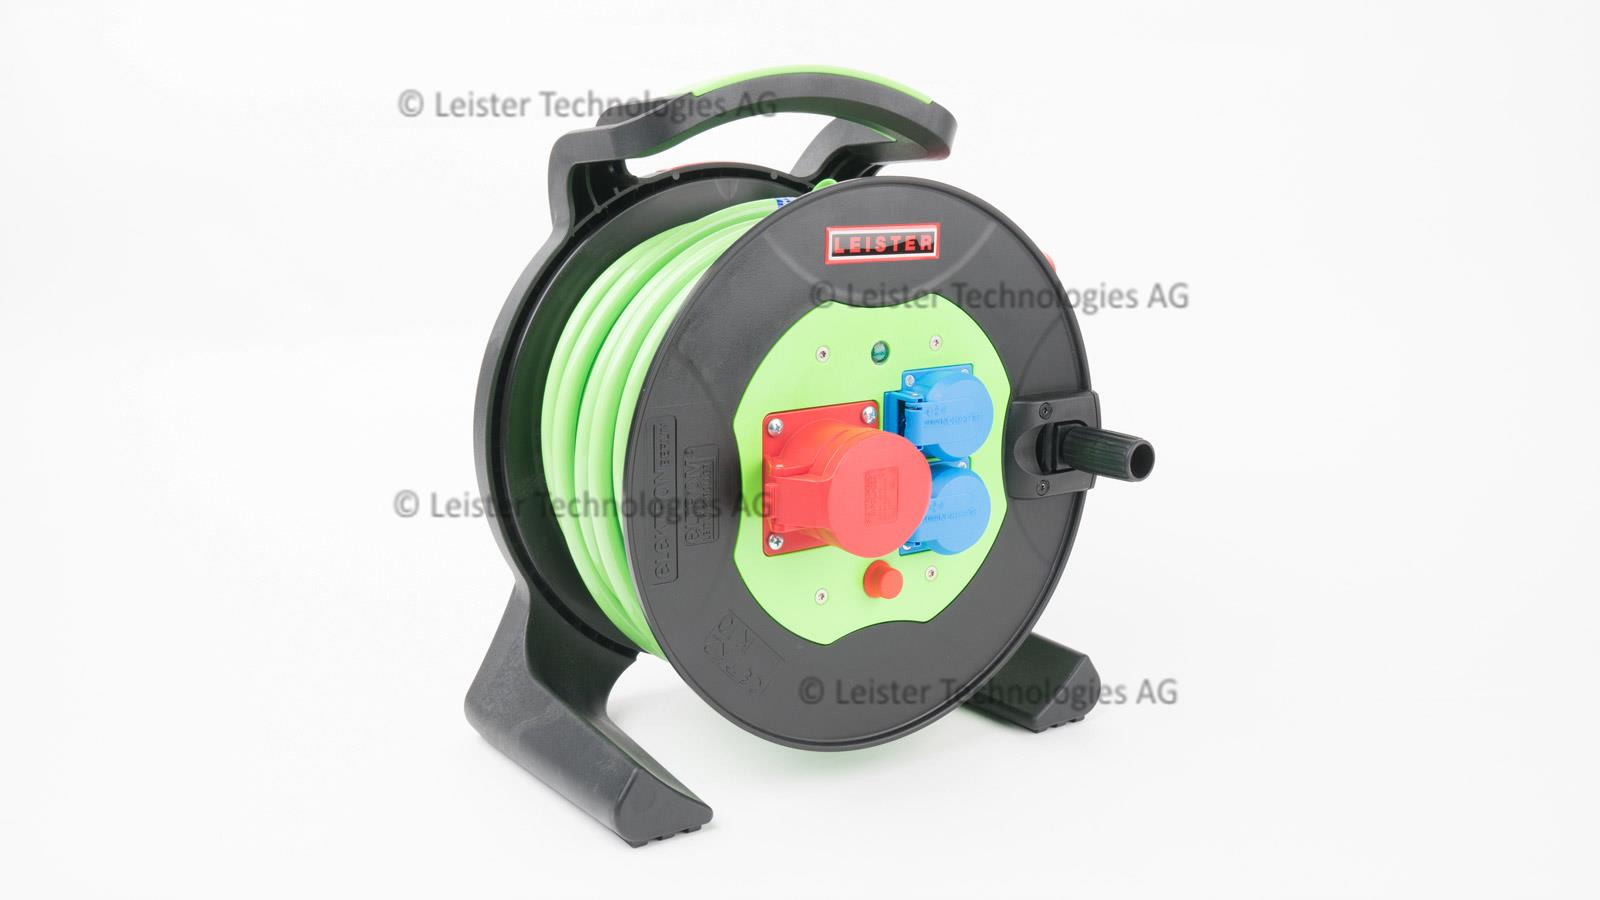 https://leister.azureedge.net/-/media/images/leister_internet/335-ltag-pw-ph-accessories/leister-accessories/allgemeines-zubehoer/161_207_cable_reel_25_1-cee_2-e.jpg?revision=5fad8764-b9e3-4ed9-9556-f95b1e8c62af